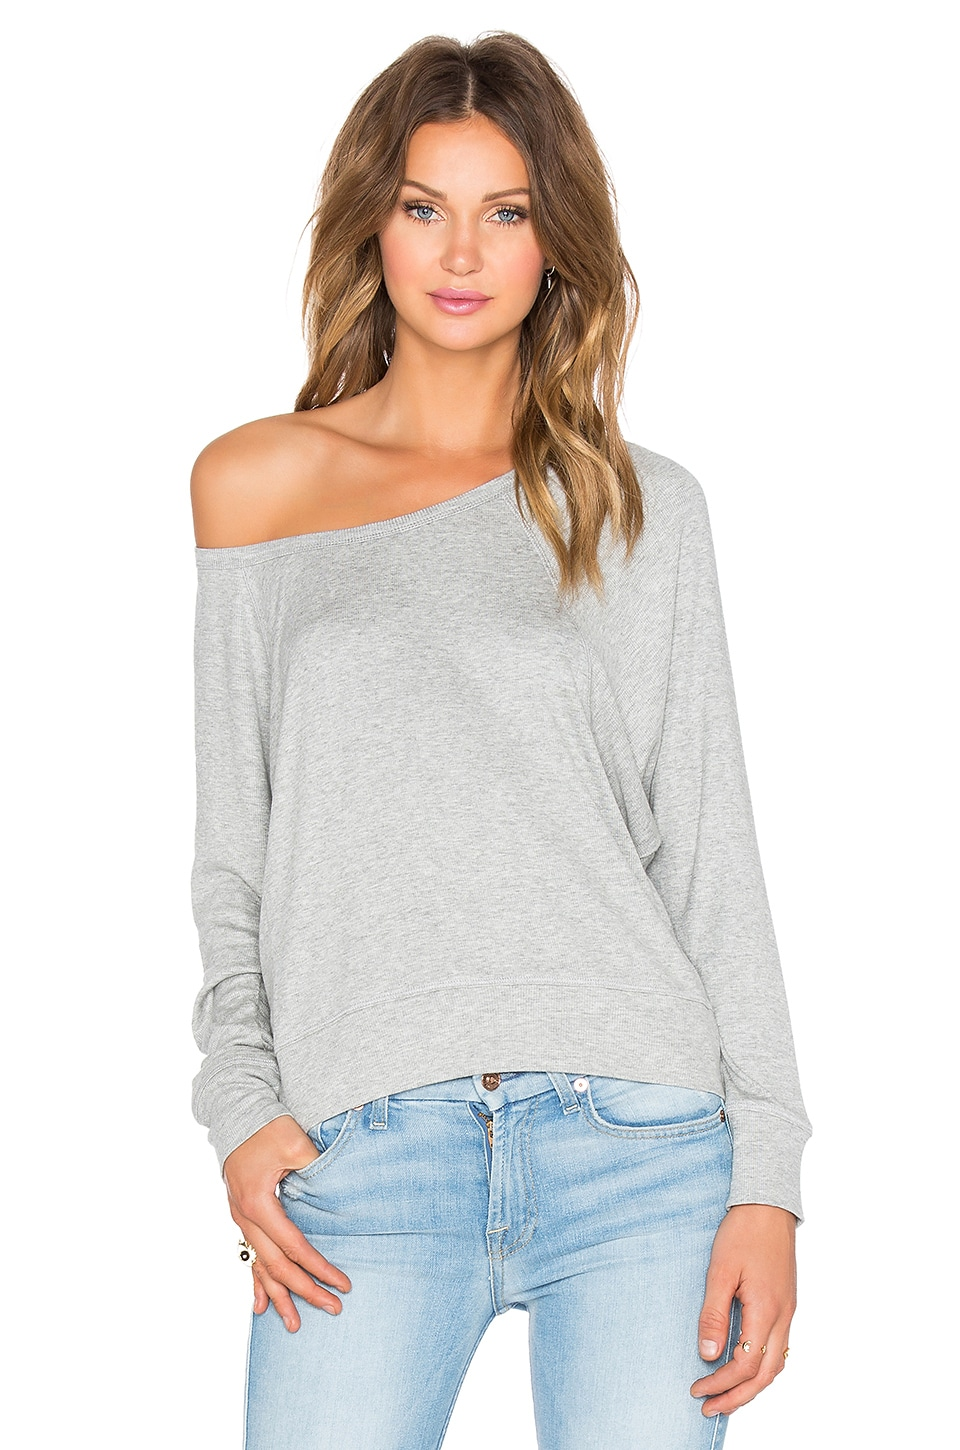 Heather Long Sleeve Slouchy Top in Light Heather Grey